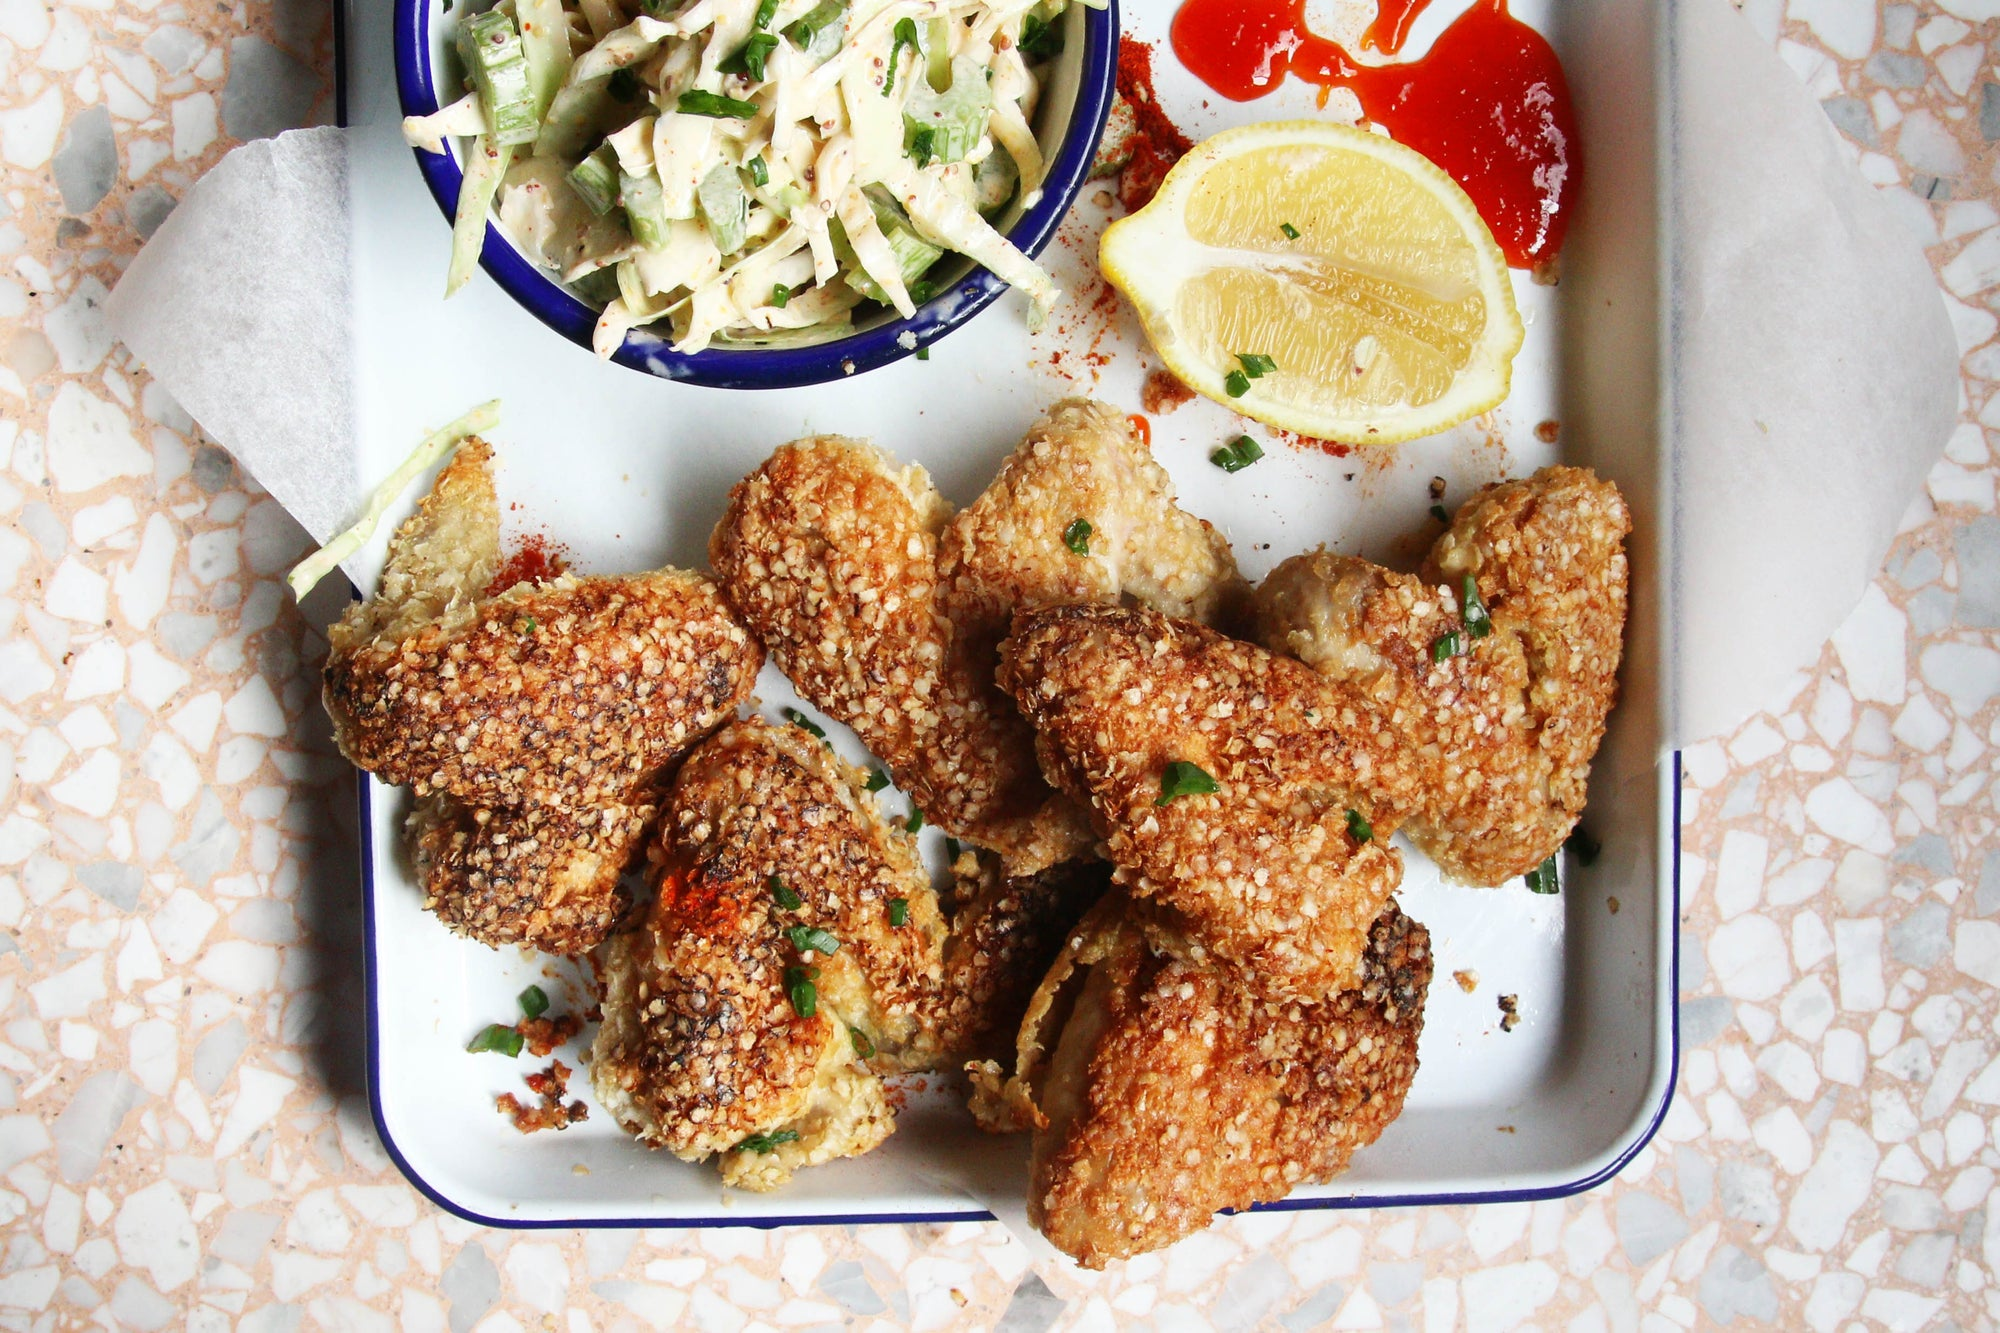 Quinoa Coated Chicken Wings